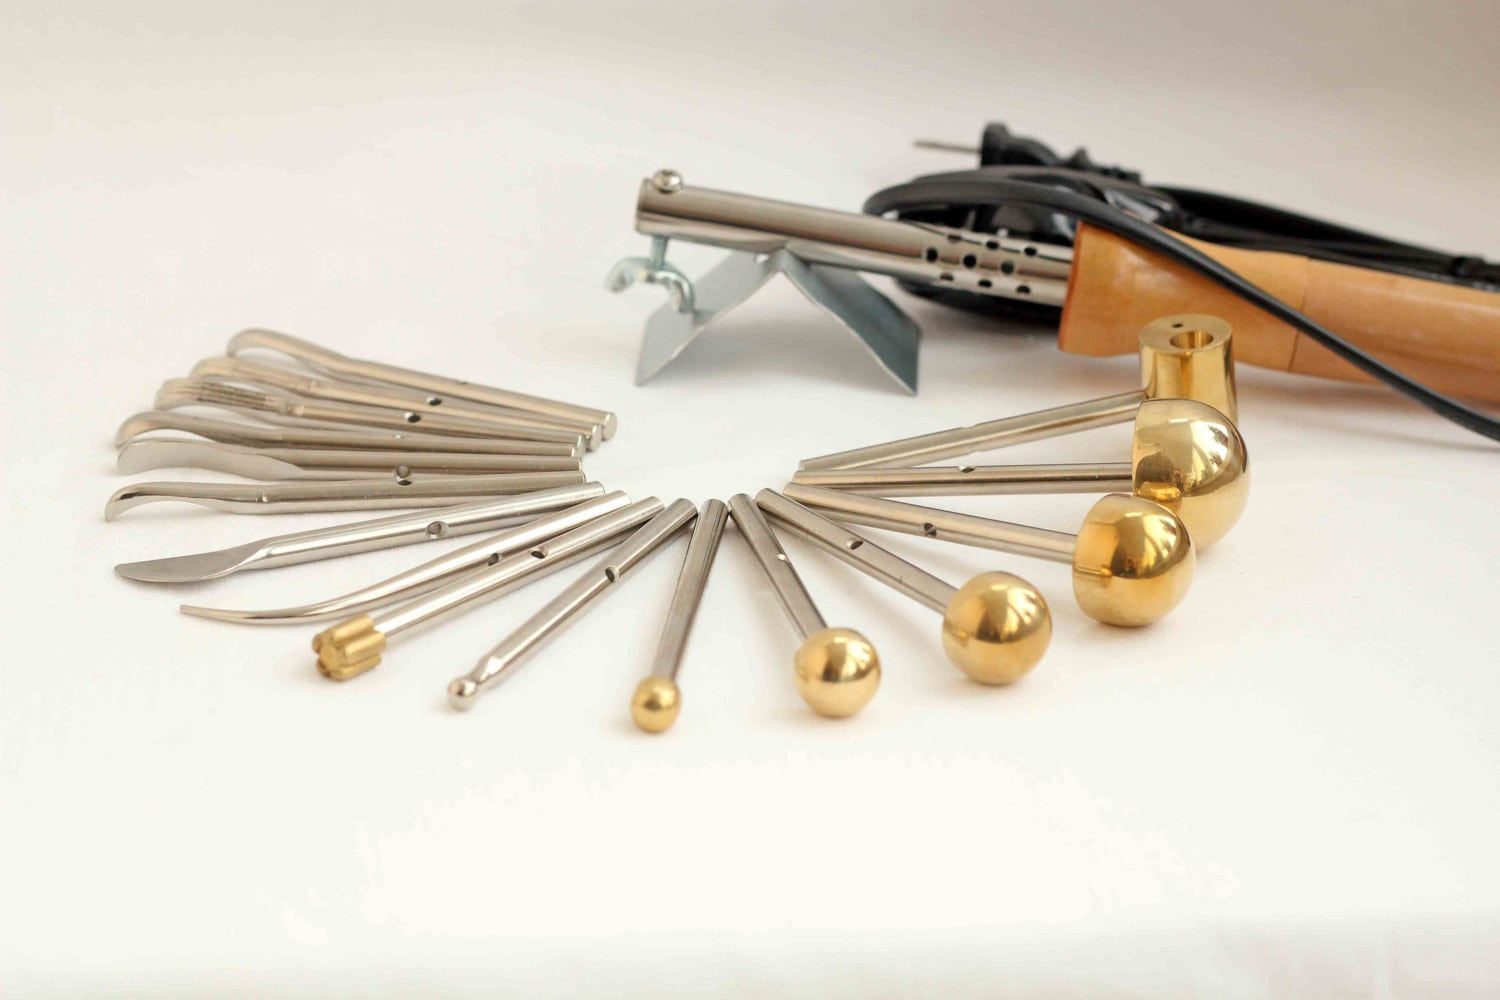 Professional Japanese Millinery Tools For Making Fabric Silk Etsy